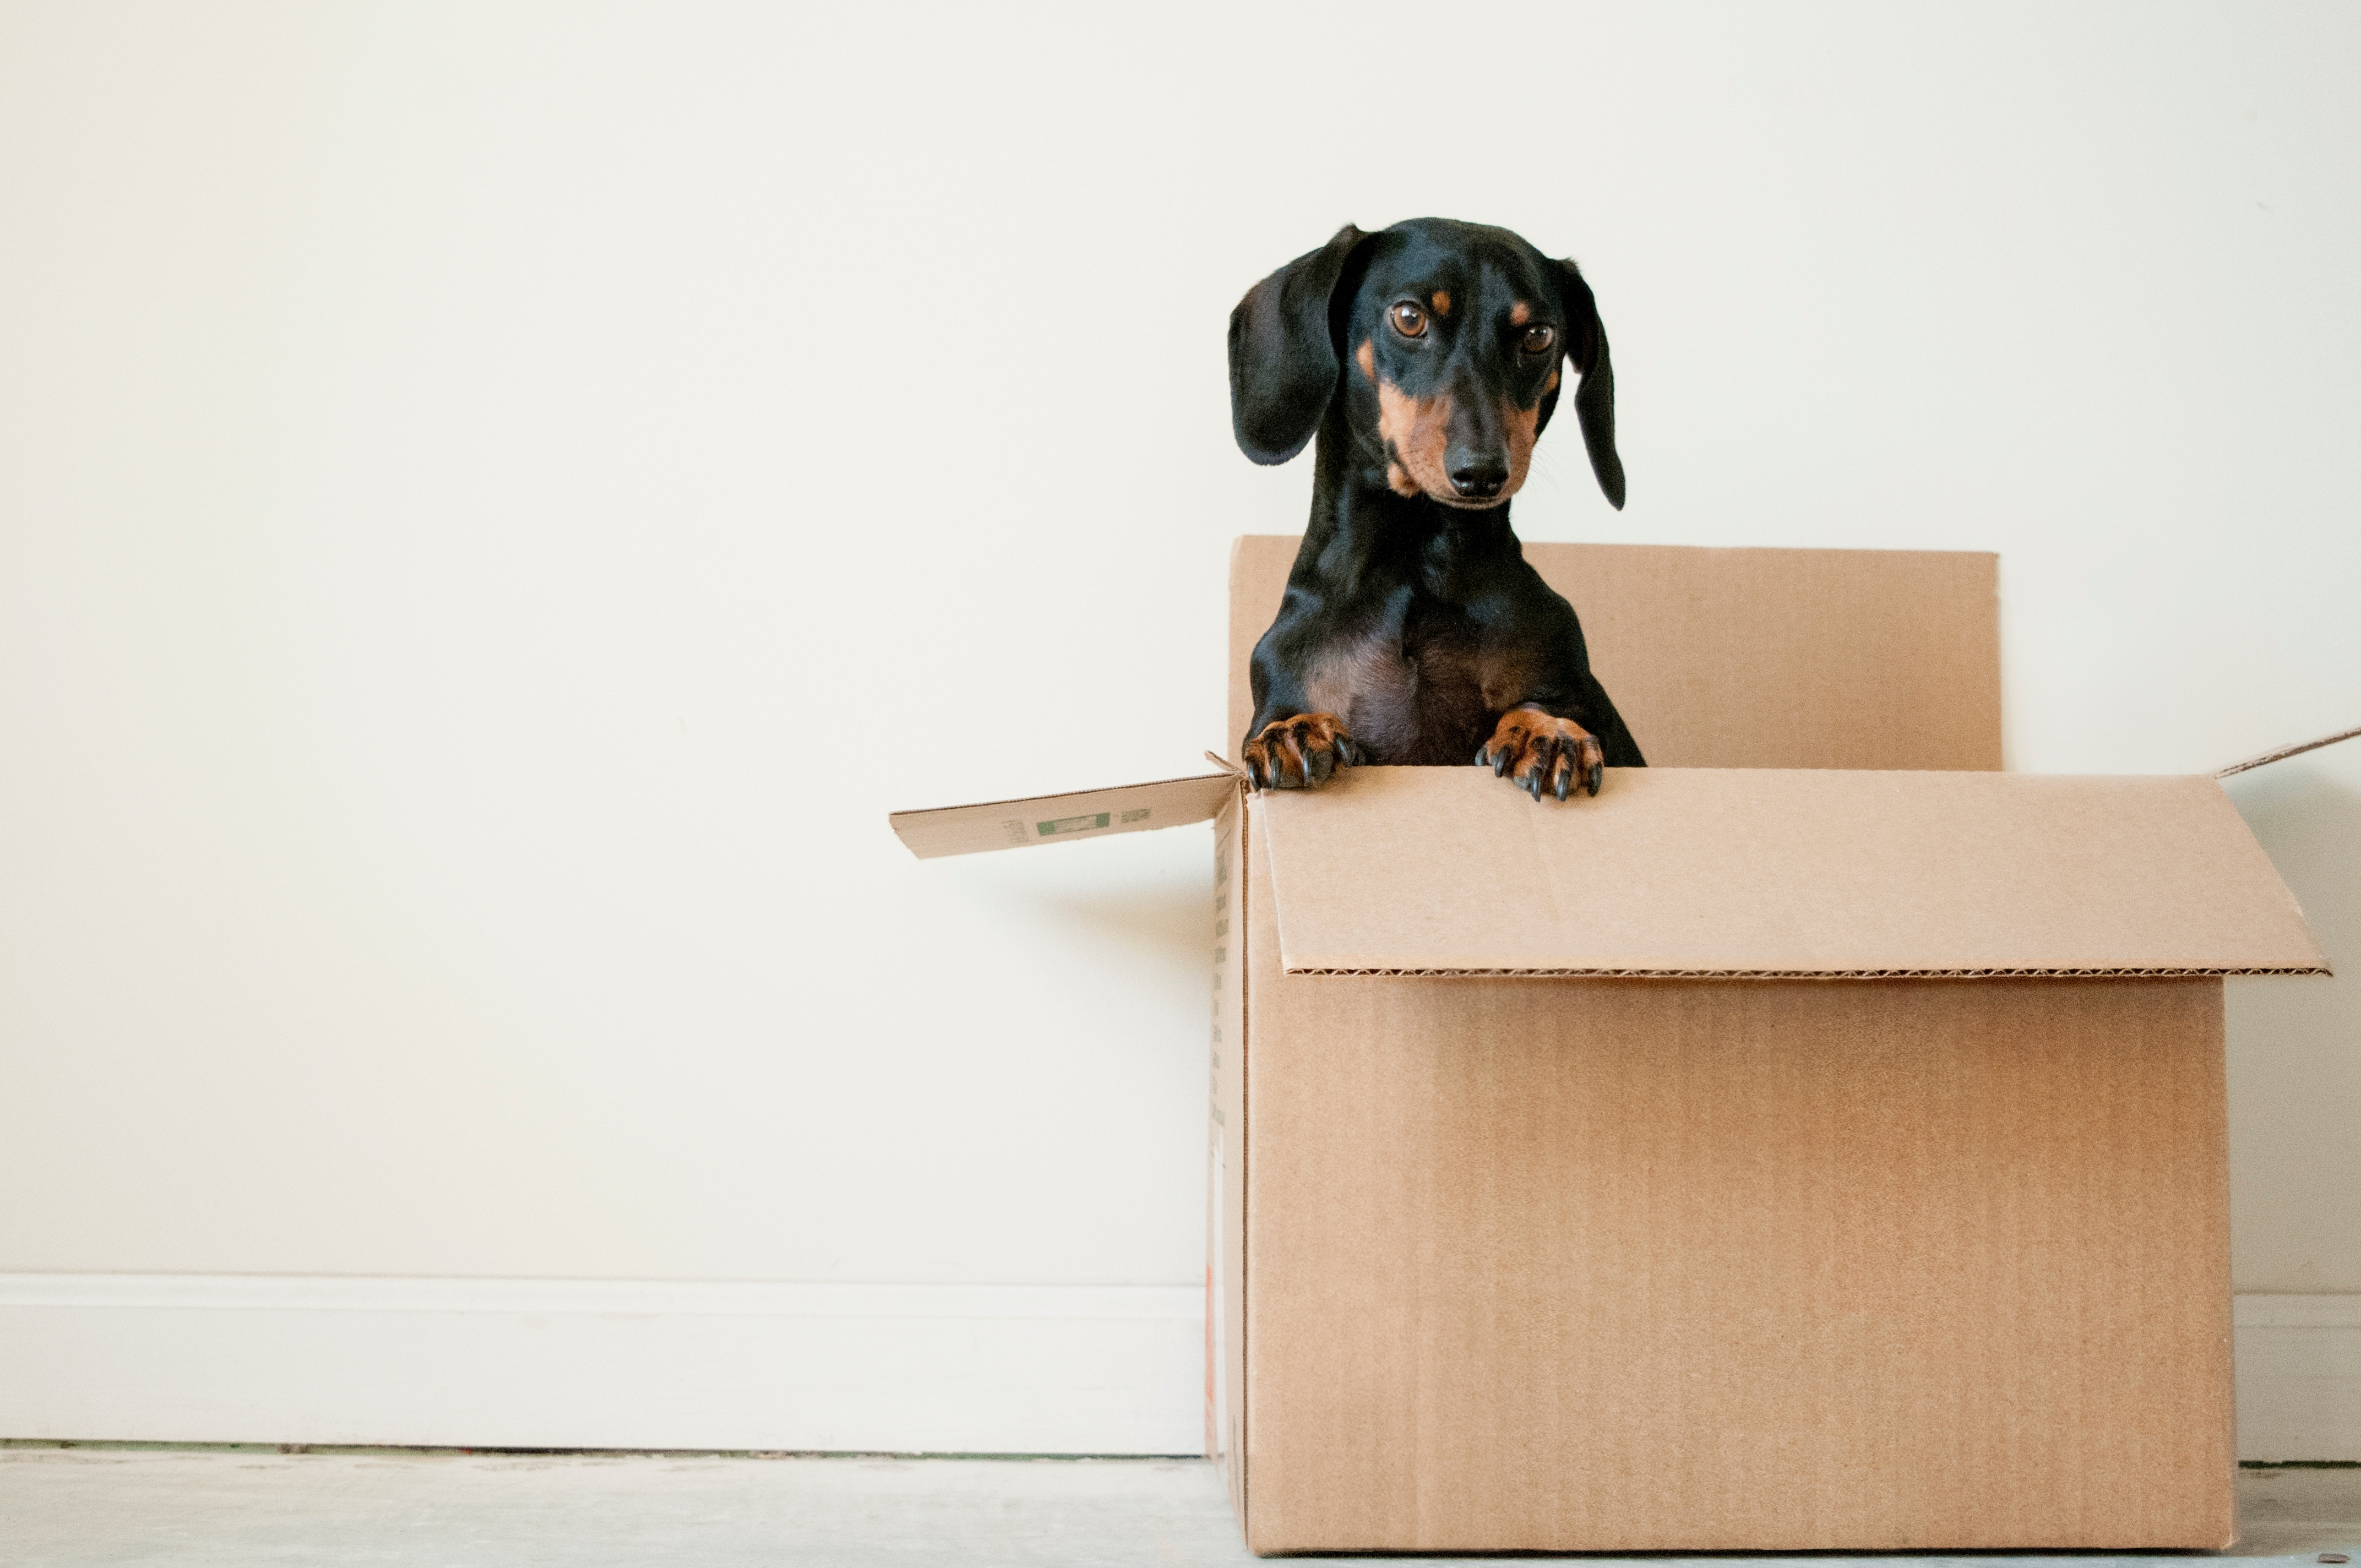 Handymen can also often help with moving services.